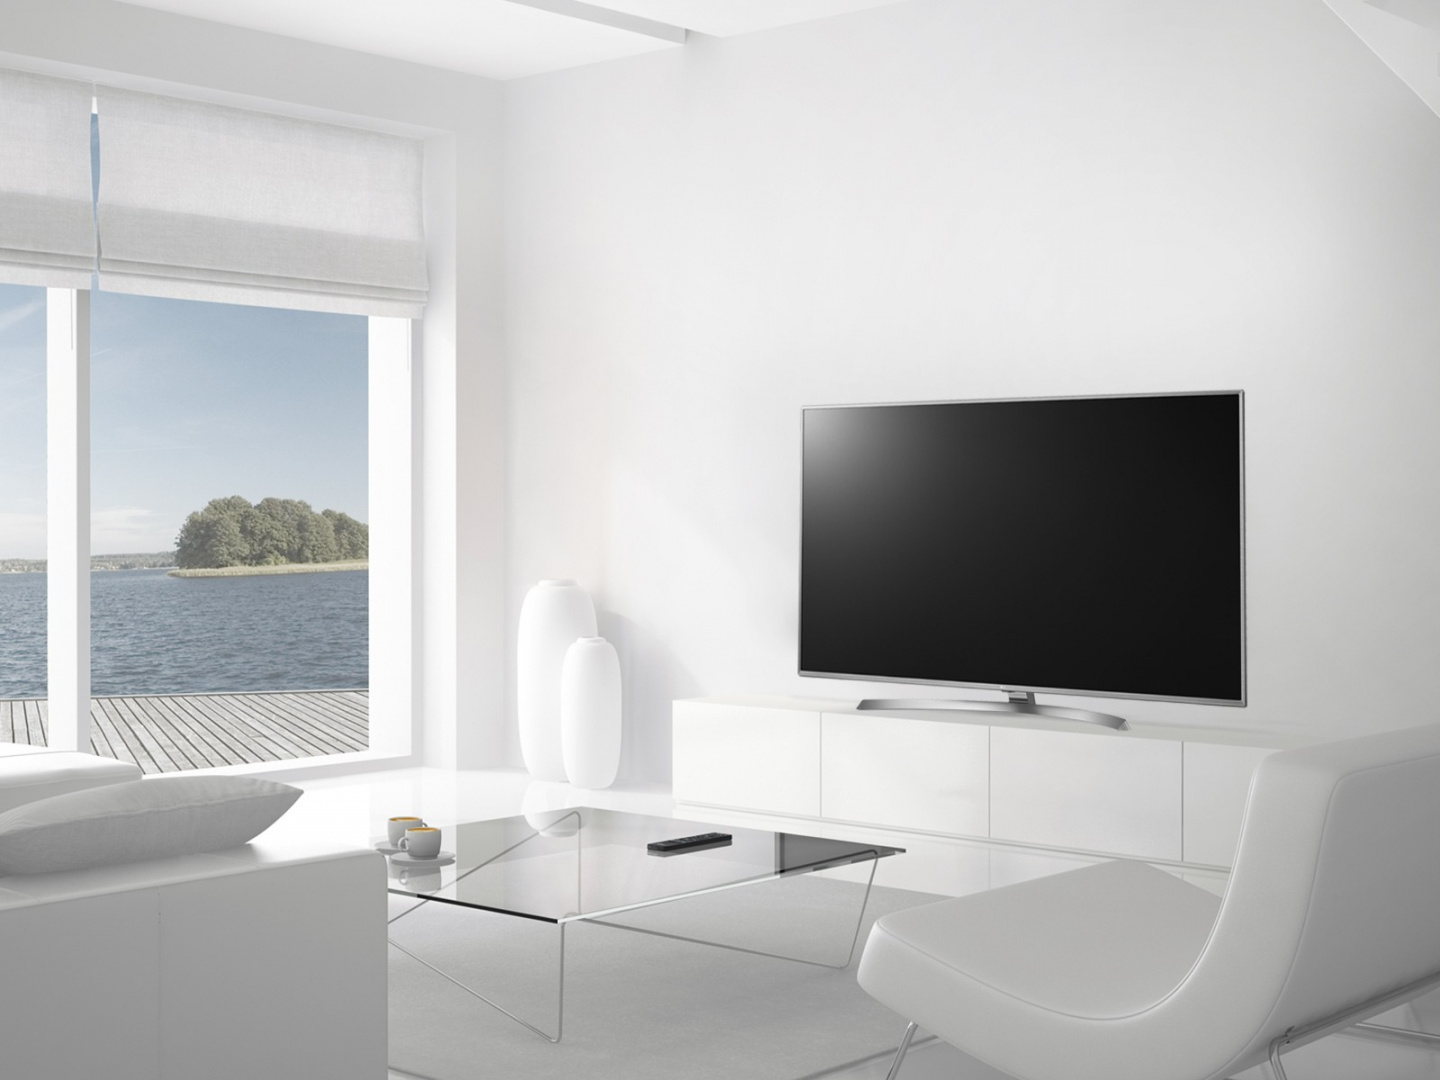 lg 4k tv. lg uj65 smart uhd/4k tvs provide access to an incredible range of streamed content via webos 3.5, including netflix, amazon prime video and youtube. lg 4k tv